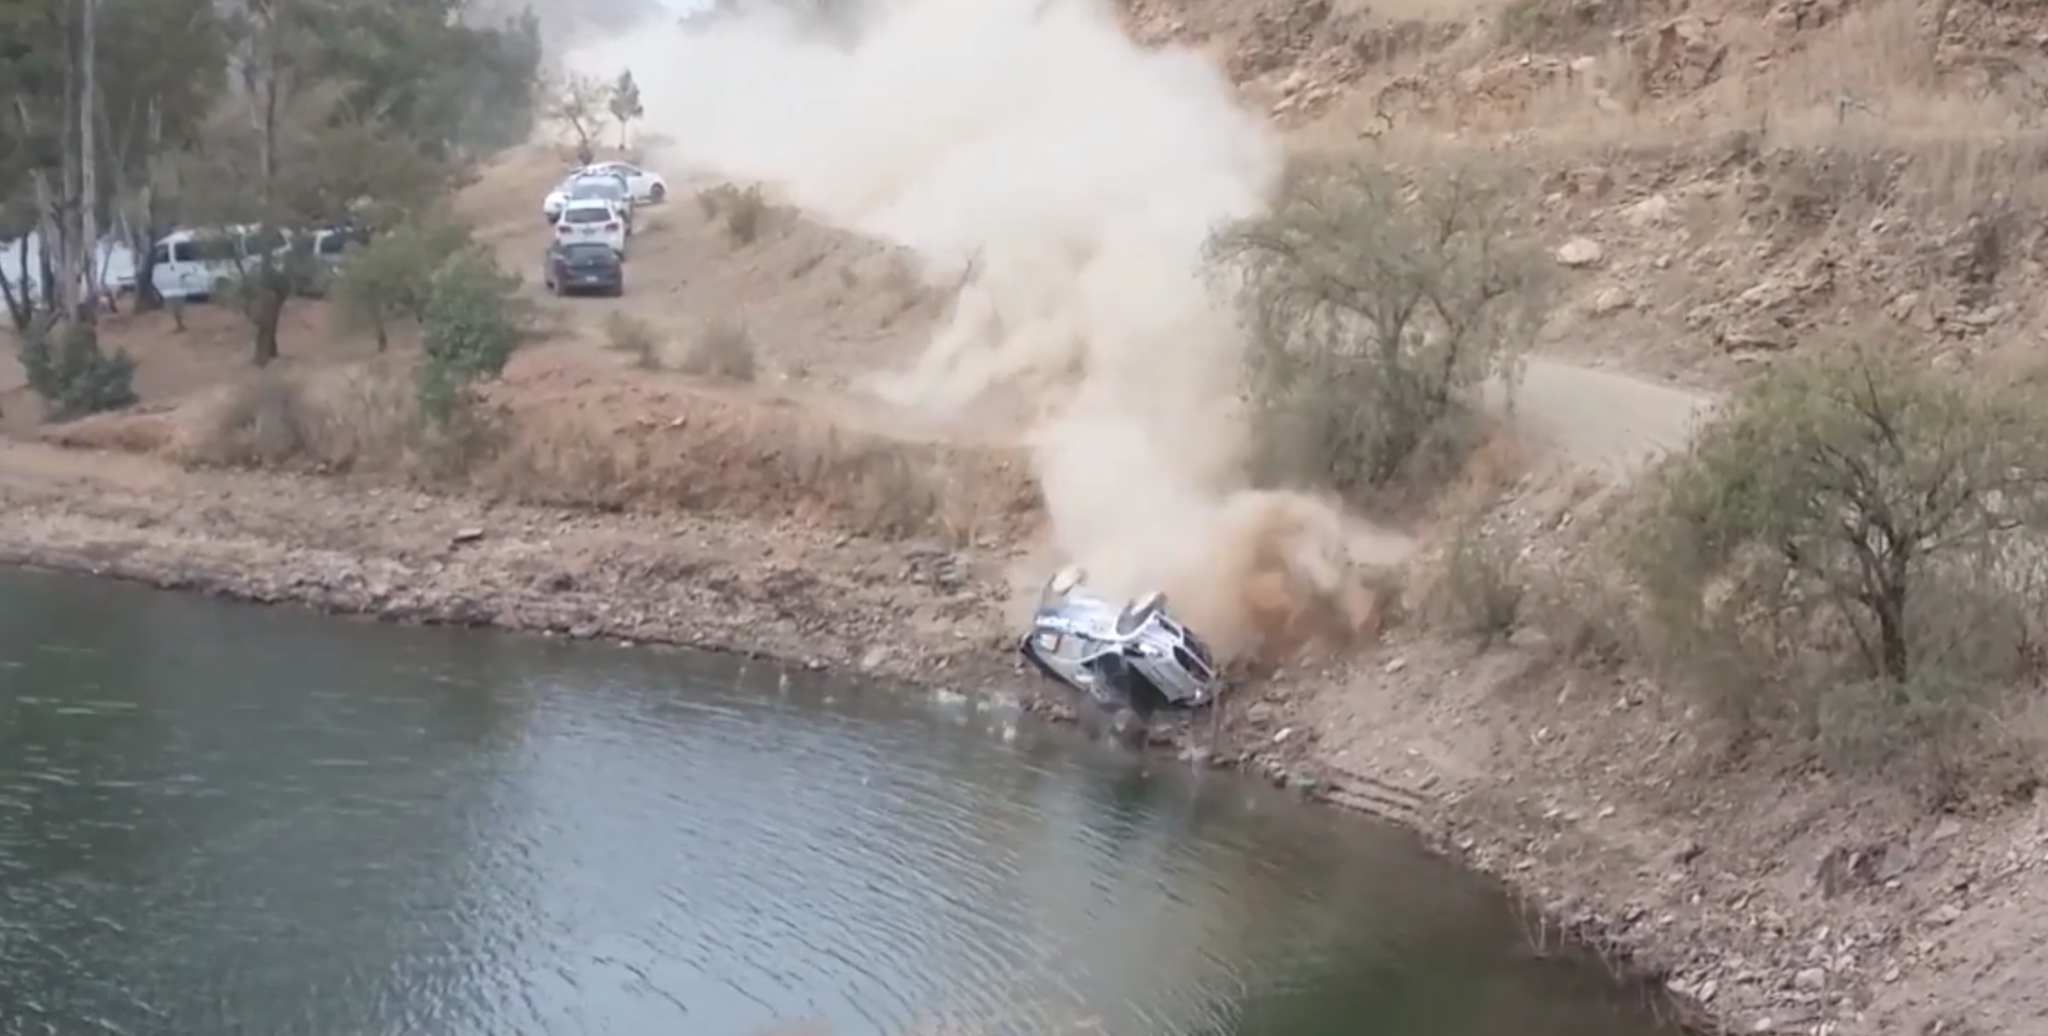 M-Sport Fiesta WRC sinks after crazy Rally Mexico crash [UPDATED]